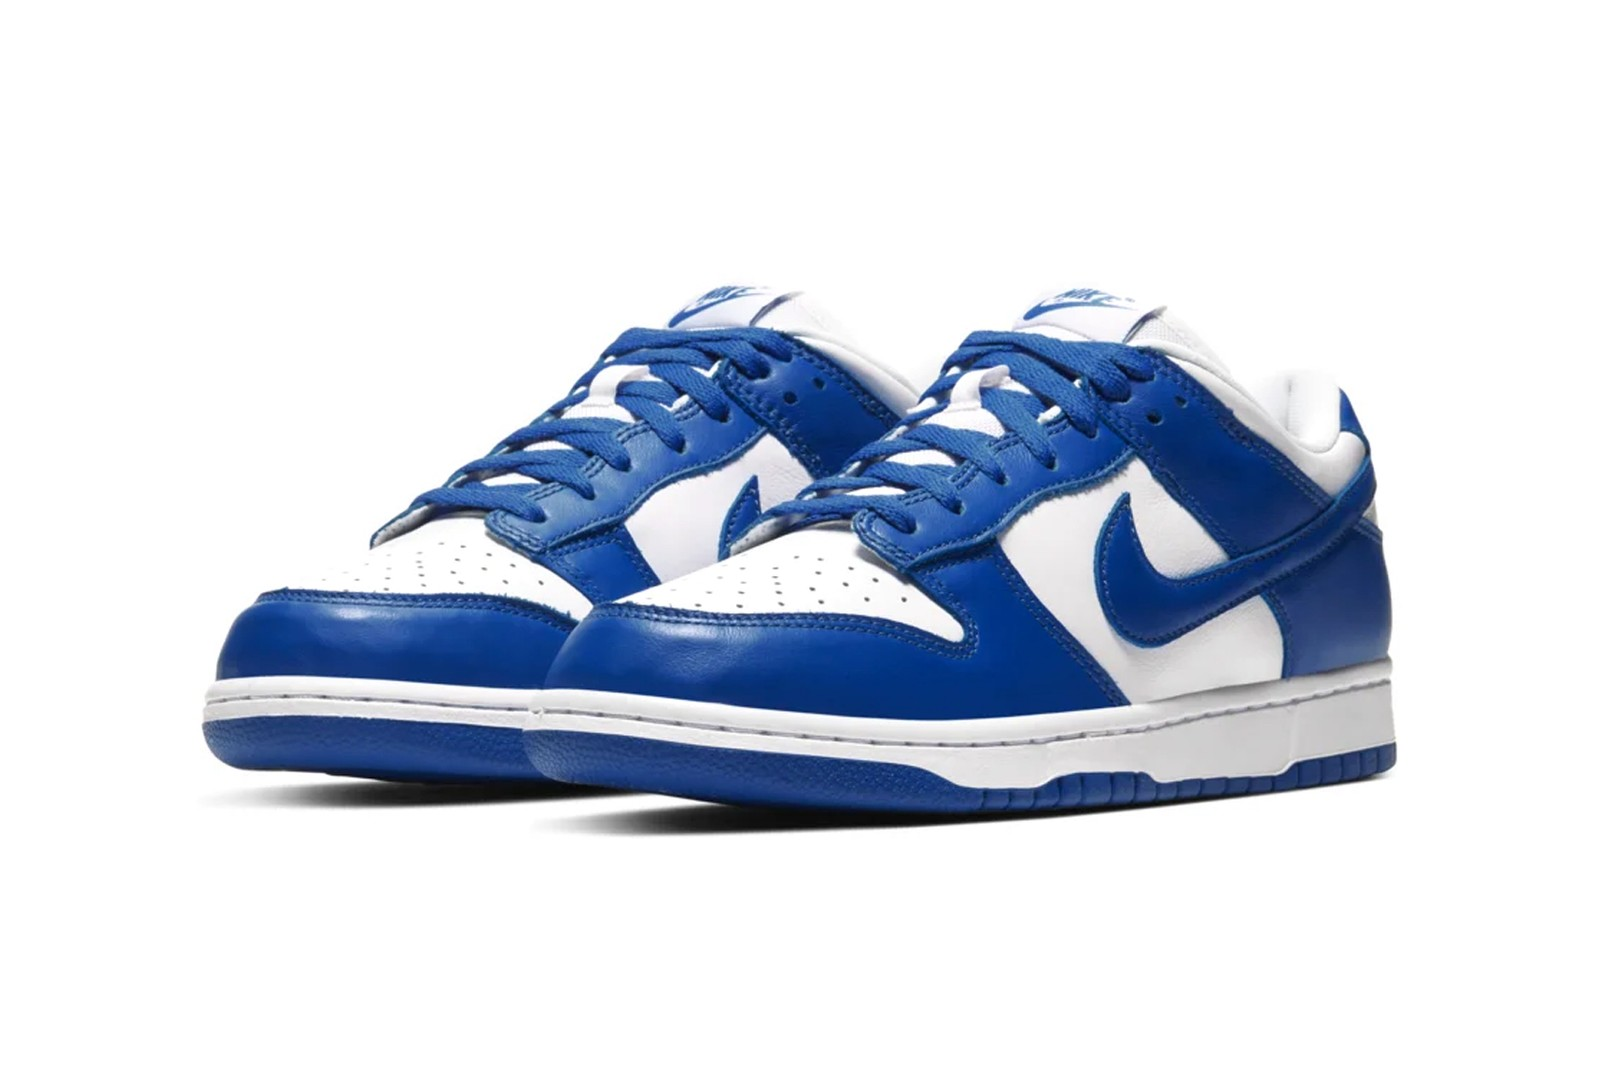 Nike Dunk Low Orange Blaze Varsity Royal Blue Syracuse Kentucky Sneakers